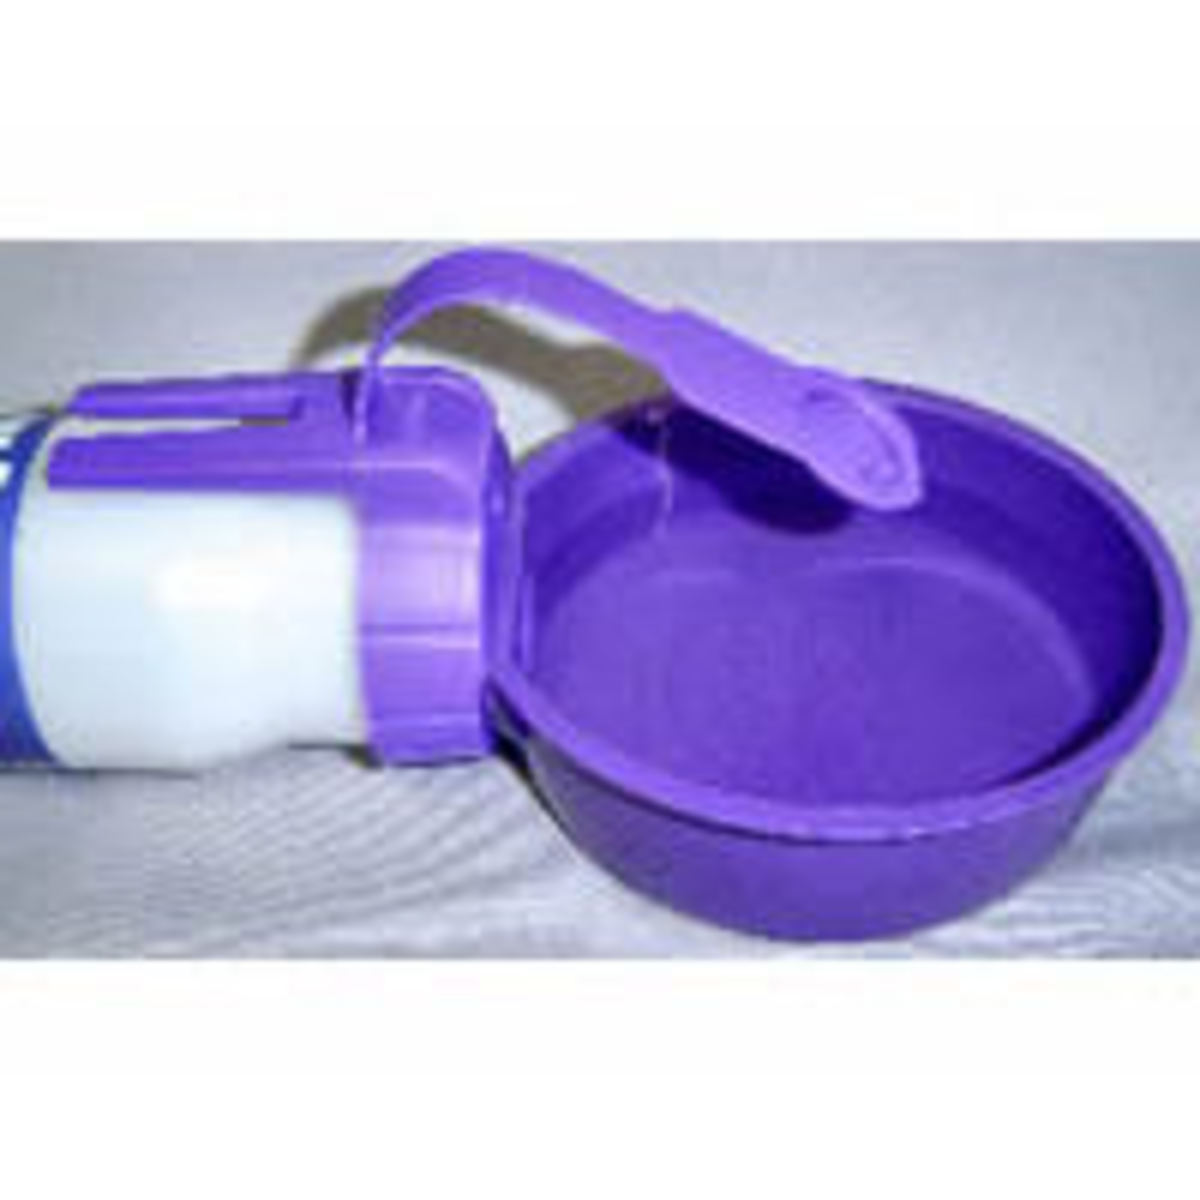 Water Rover bowl fills easily and the water tilts back into the bottle when your dog is finished with his drink.